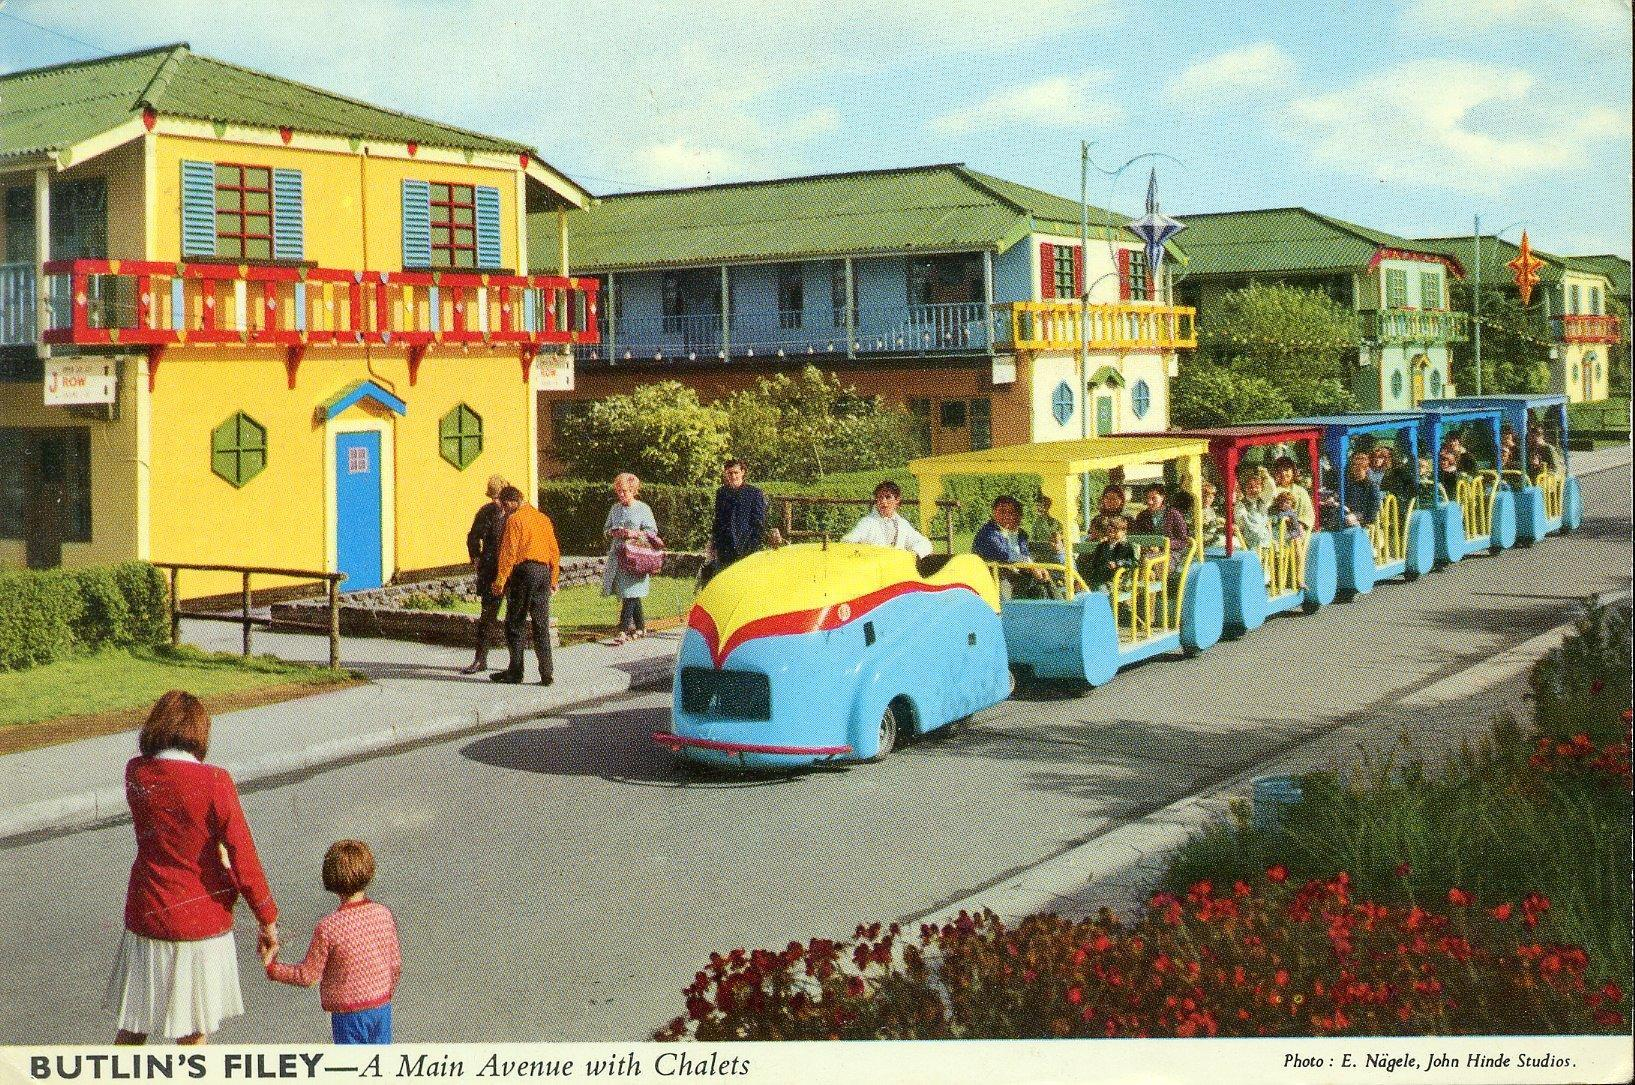 Butlins Filey - A Main Avenue (postcard, late 1960s)